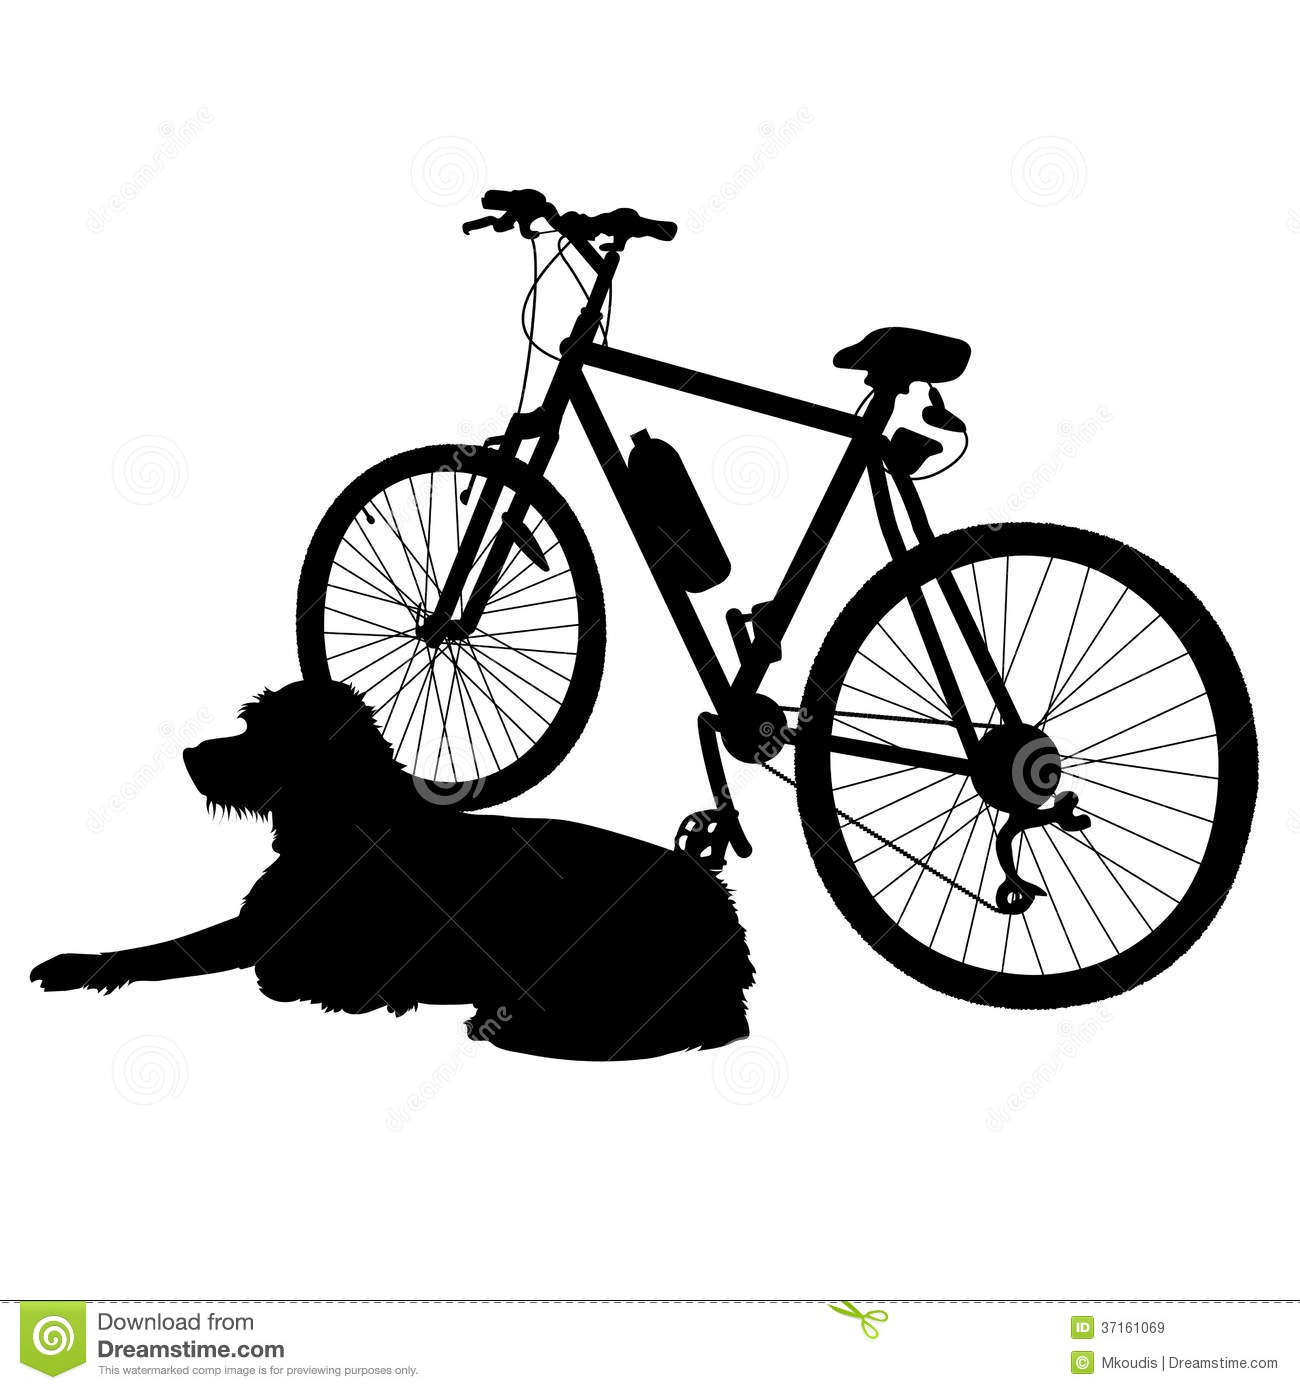 dog is lying dog next to a bike waiting for his owner to return.